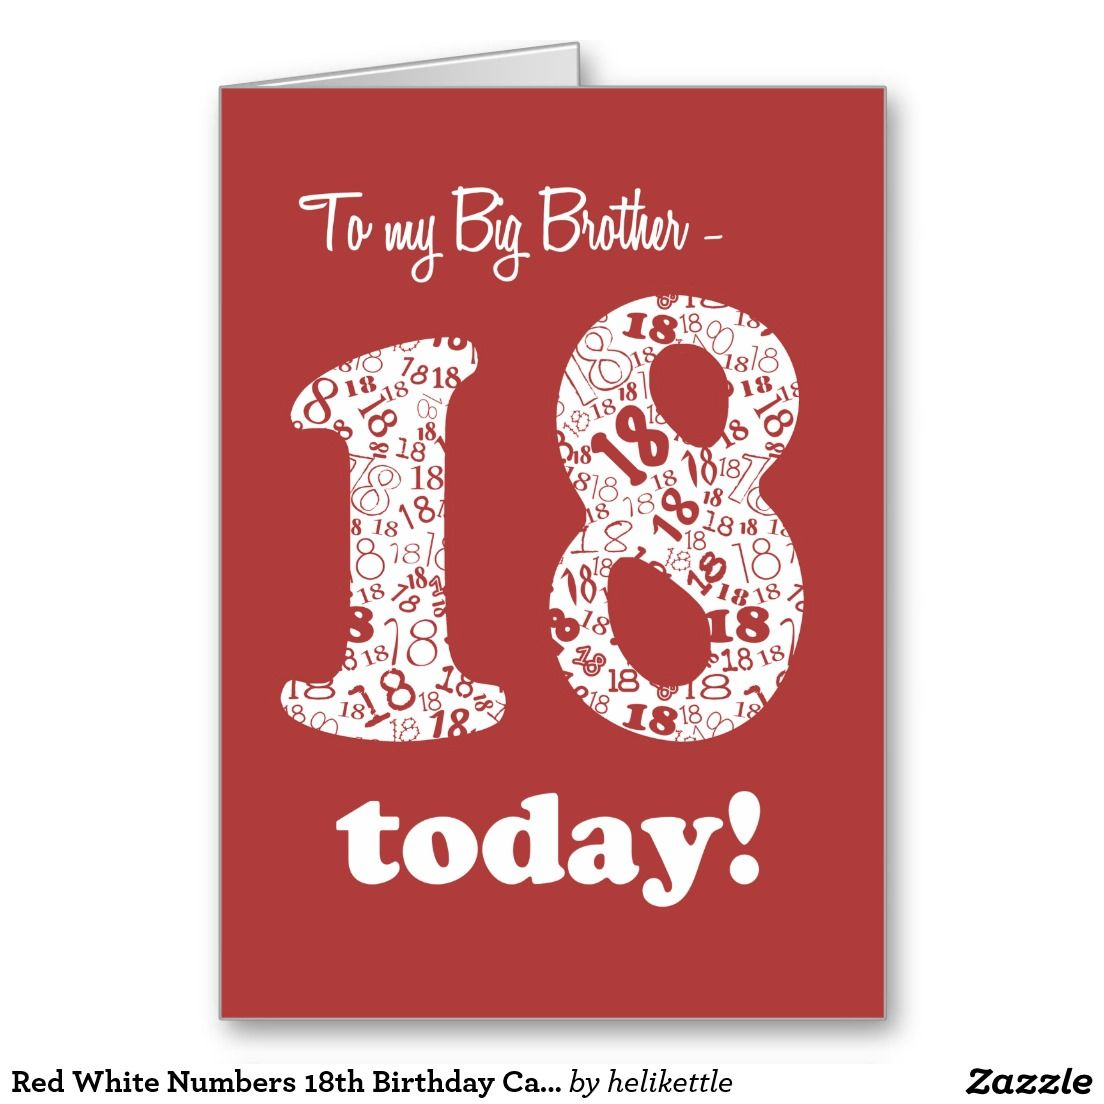 Red White Numbers 18th Birthday Card, Big Brother: up to $3.50 - http://www.zazzle.com/red_white_numbers_18th_birthday_card_big_brother-137183092021384863?rf=238041988035411422&tc=pintw